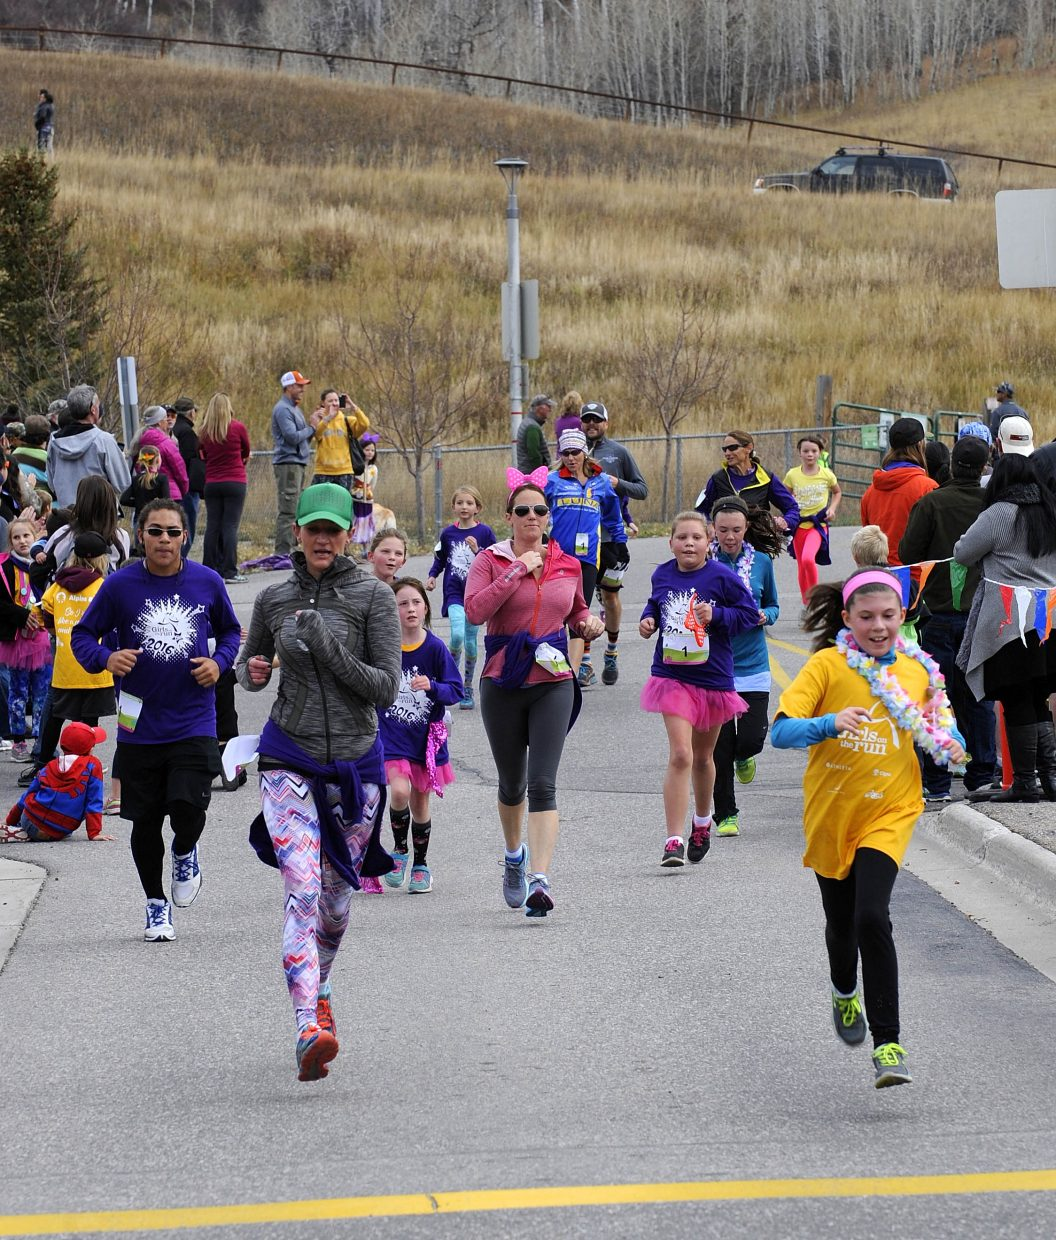 Runners approach the finish line during the Girls on the Run event in Steamboat Springs.